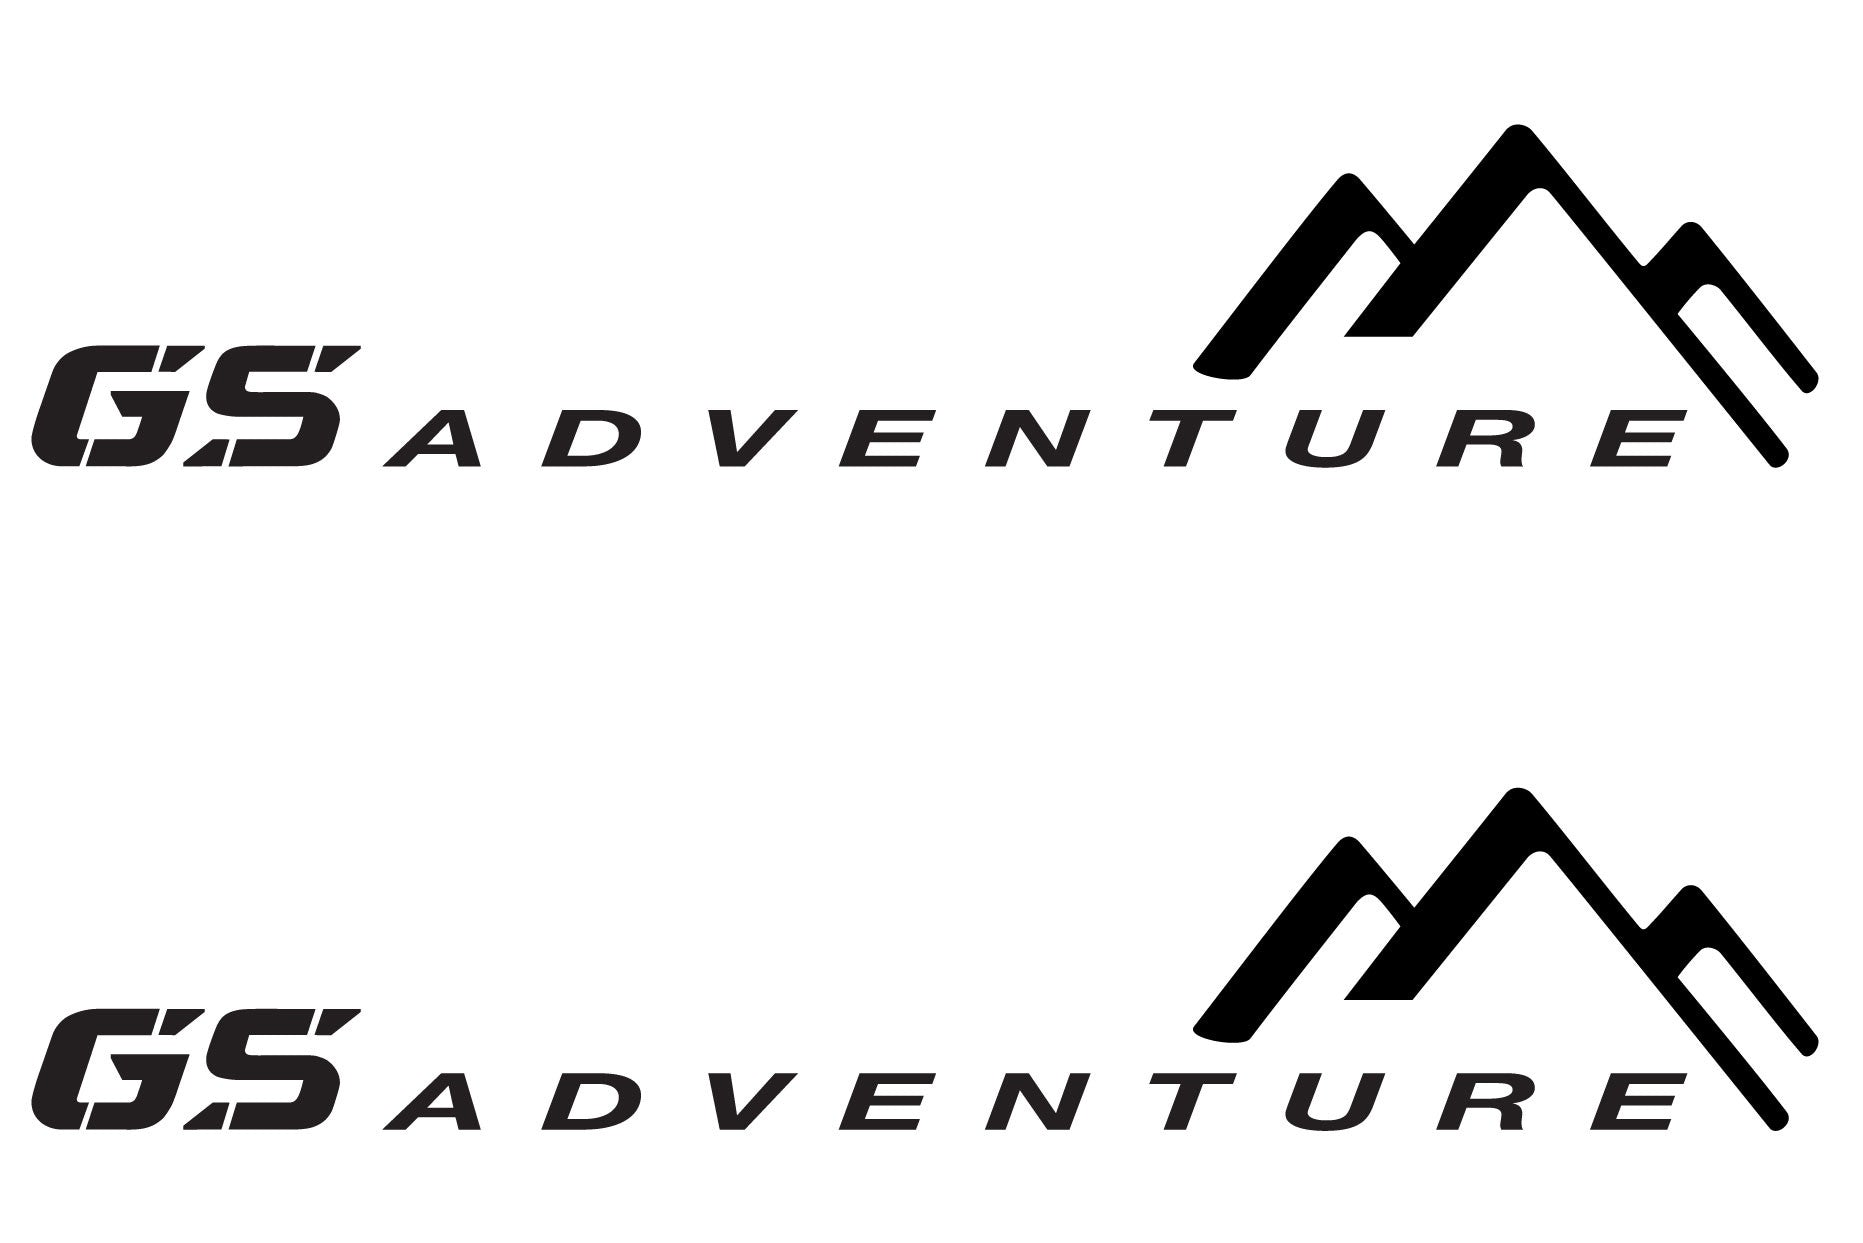 Bmw Motorcycle Reflective Decal Kit Gs Adventure For